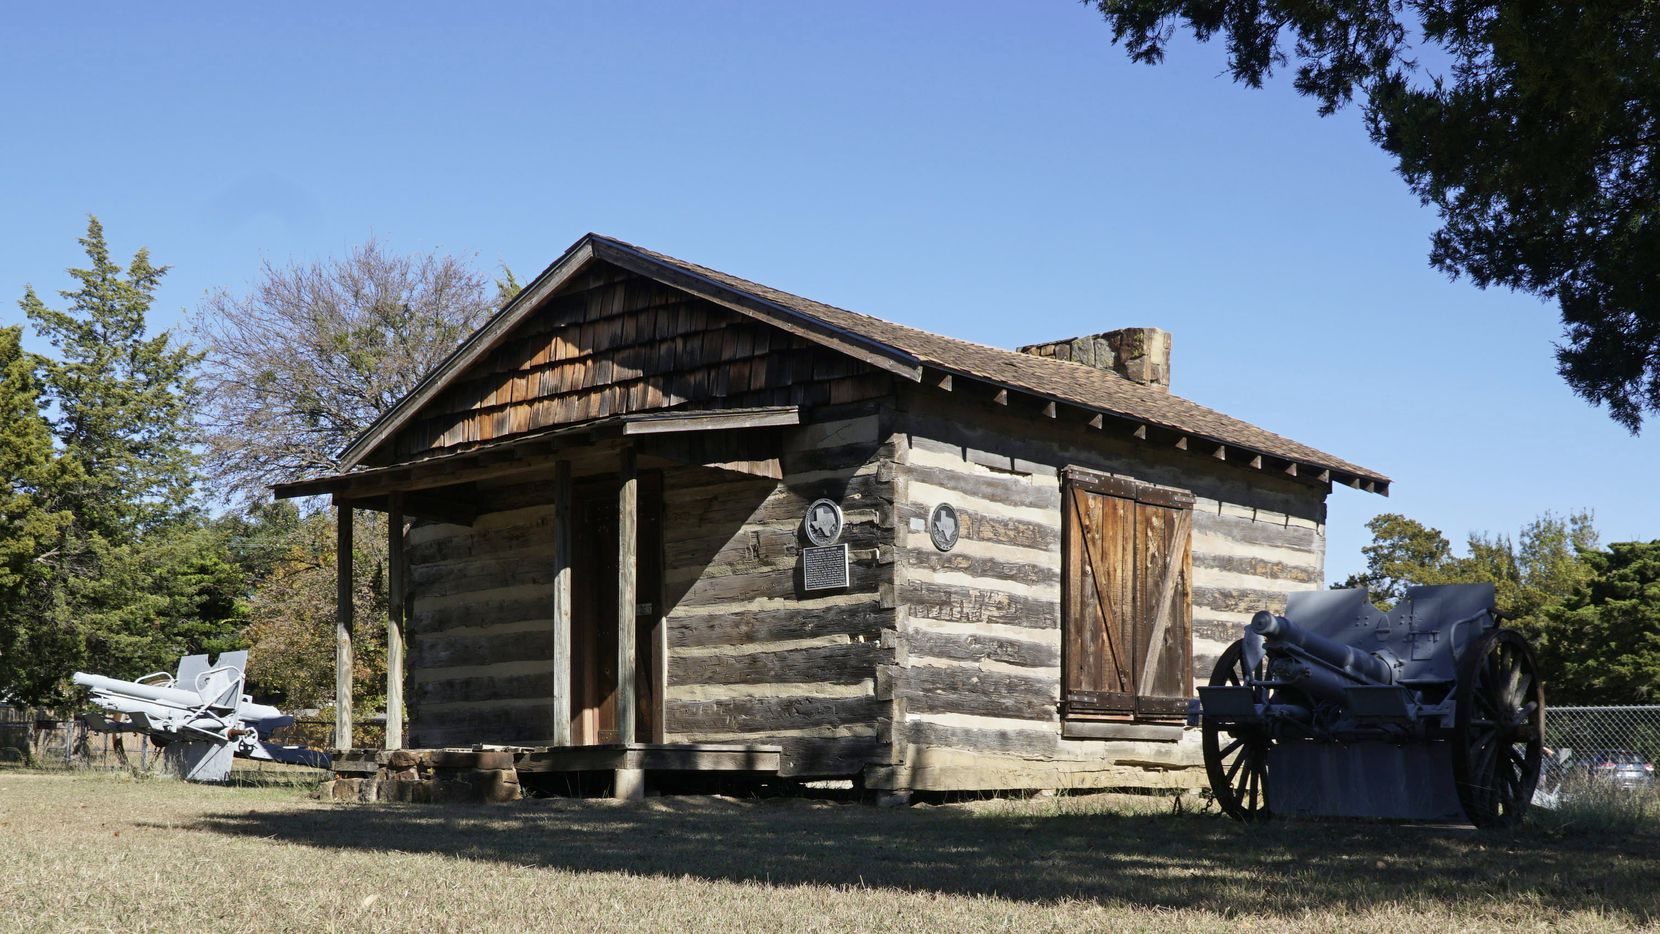 Hord Cabin at the American Legion Post on Cockrell Hill in Dallas, Texas on Wednesday, November 25, 2020.  (Lawrence Jenkins/Special Contributor)